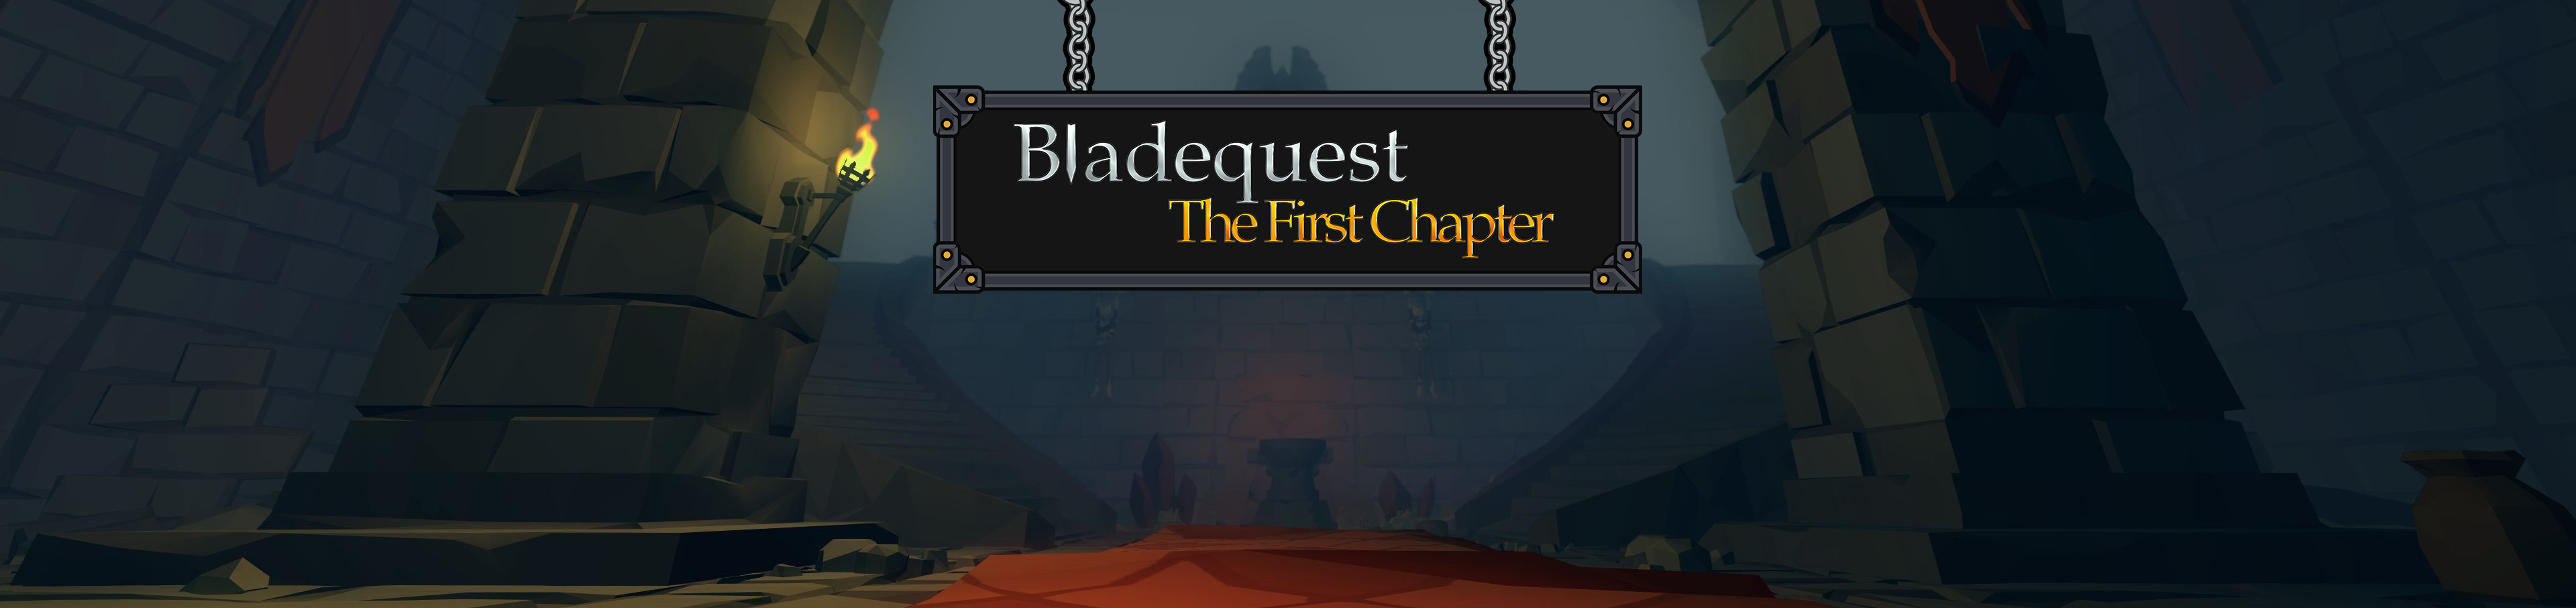 Bladequest - Is it the best FREE Leadwerks Game?